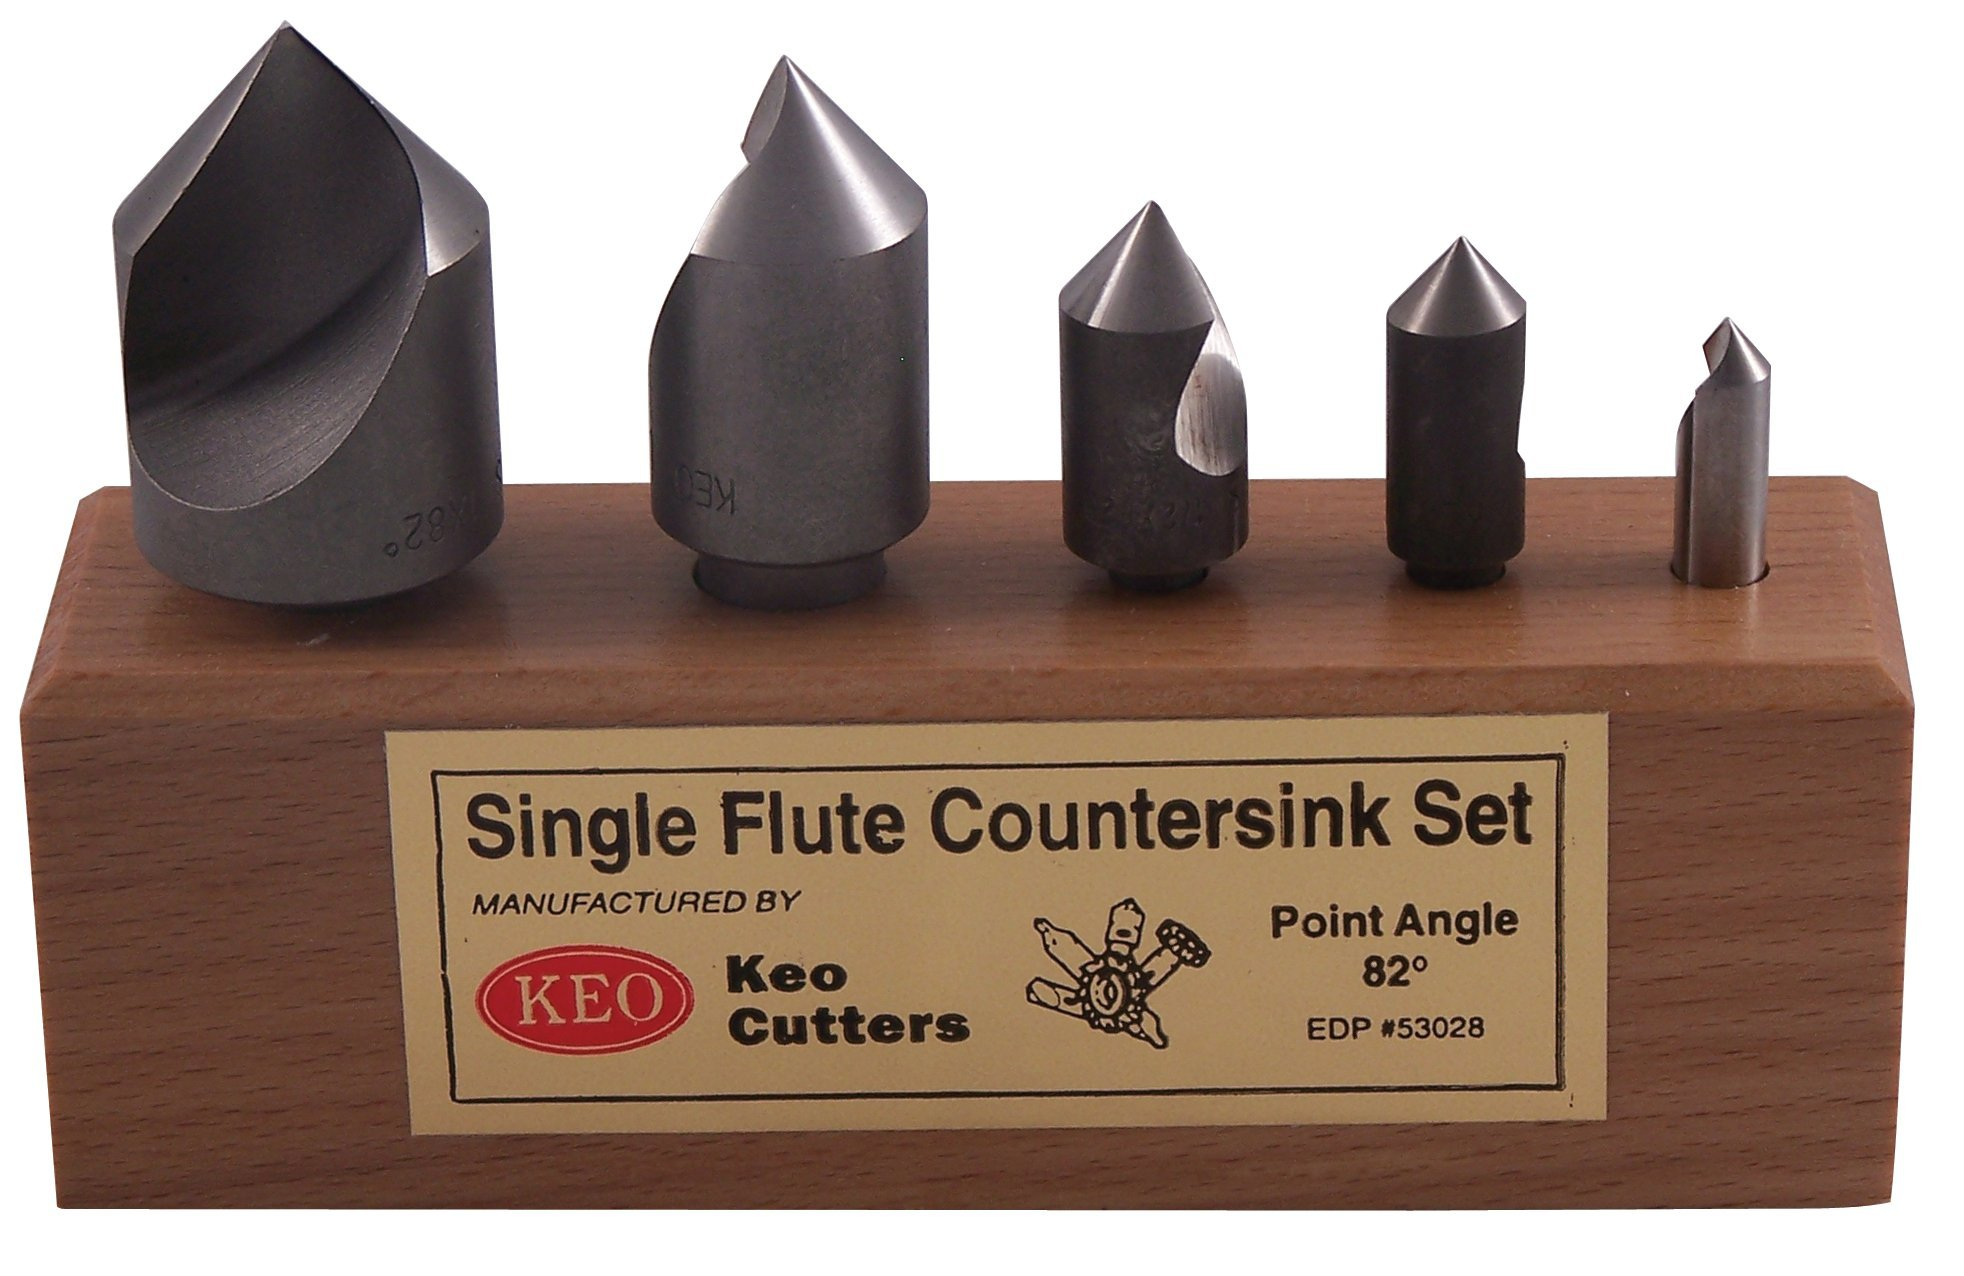 KEO 50059 Cobalt Steel Single-End Countersink Set, Uncoated (Bright) Finish, Single Flute, 90 Degree Angle, 1/4'' - 1'' Body Diameter